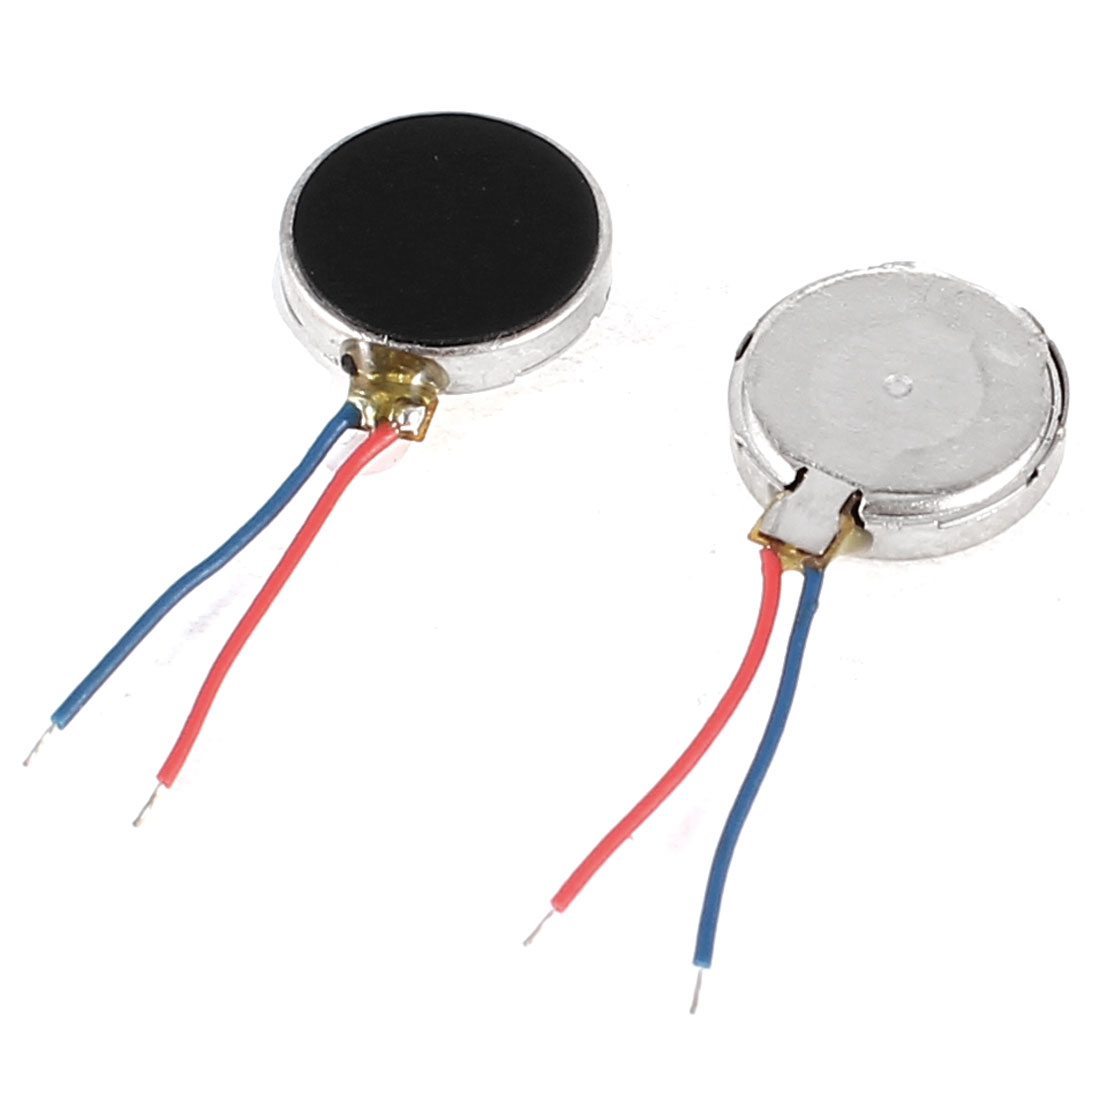 2-Pcs-DC-3V-10mm-x-2-6mm-1020-Cell-Phone-Coin-Flat-Vibrating-Vibration-Motor